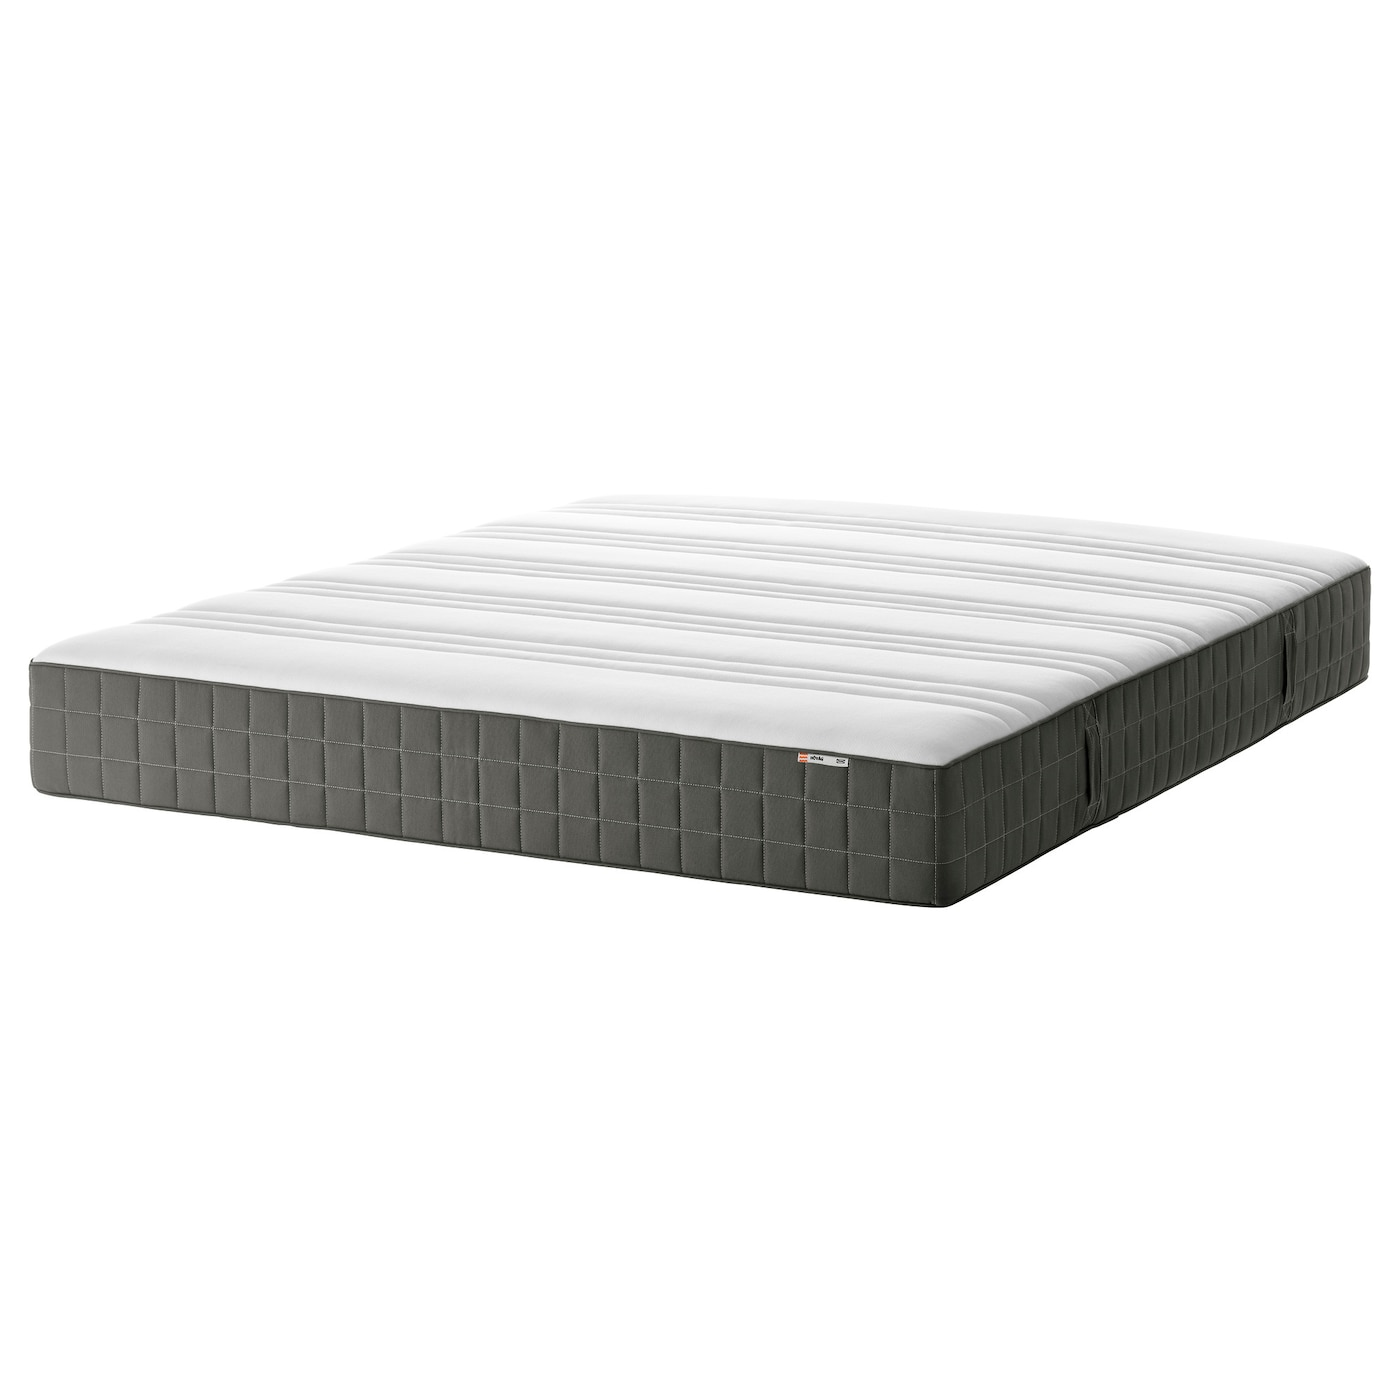 h v g matelas ressorts ensach s mi ferme gris fonc 160x200 cm ikea. Black Bedroom Furniture Sets. Home Design Ideas